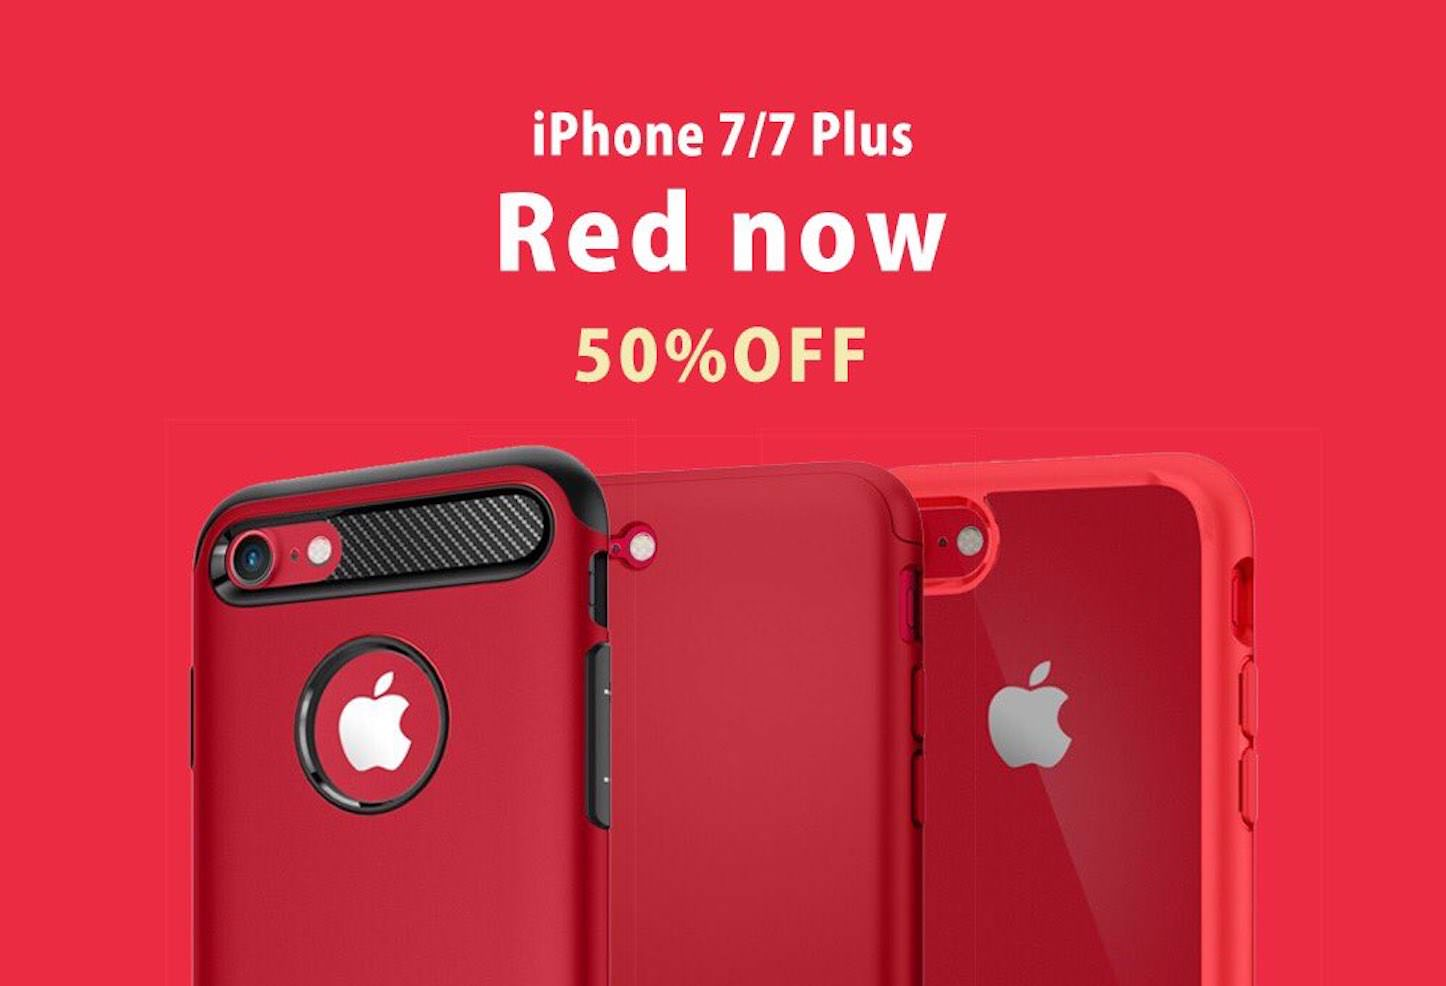 Spigen Red Case Sale